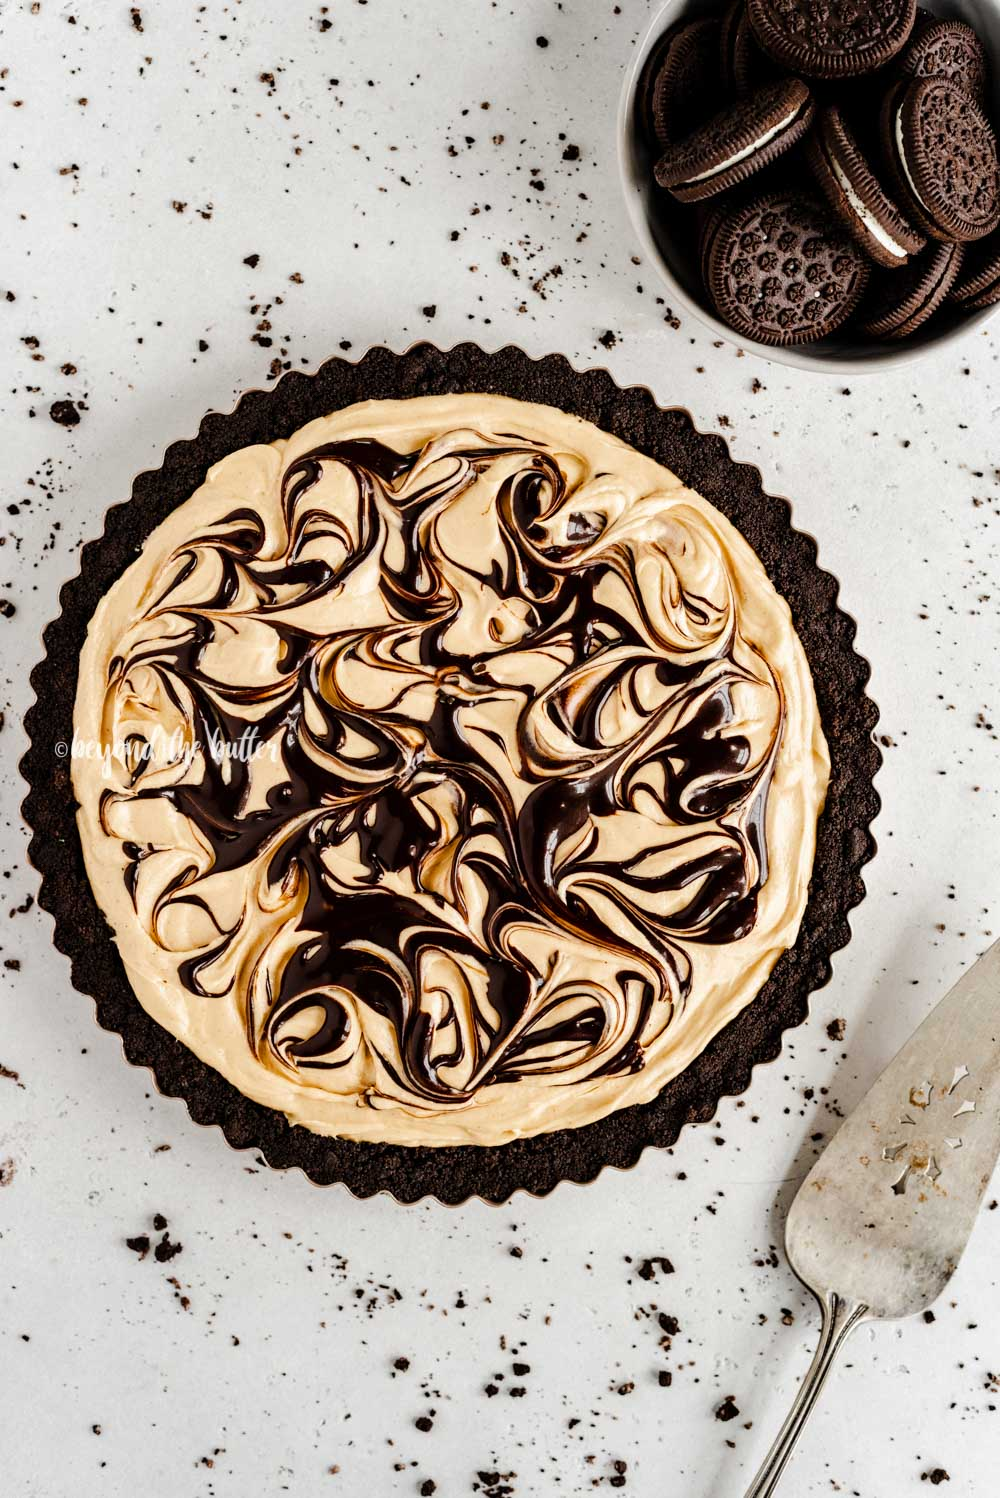 Overhead image of chocolate peanut butter swirl tart | All Images © Beyond the Butter™